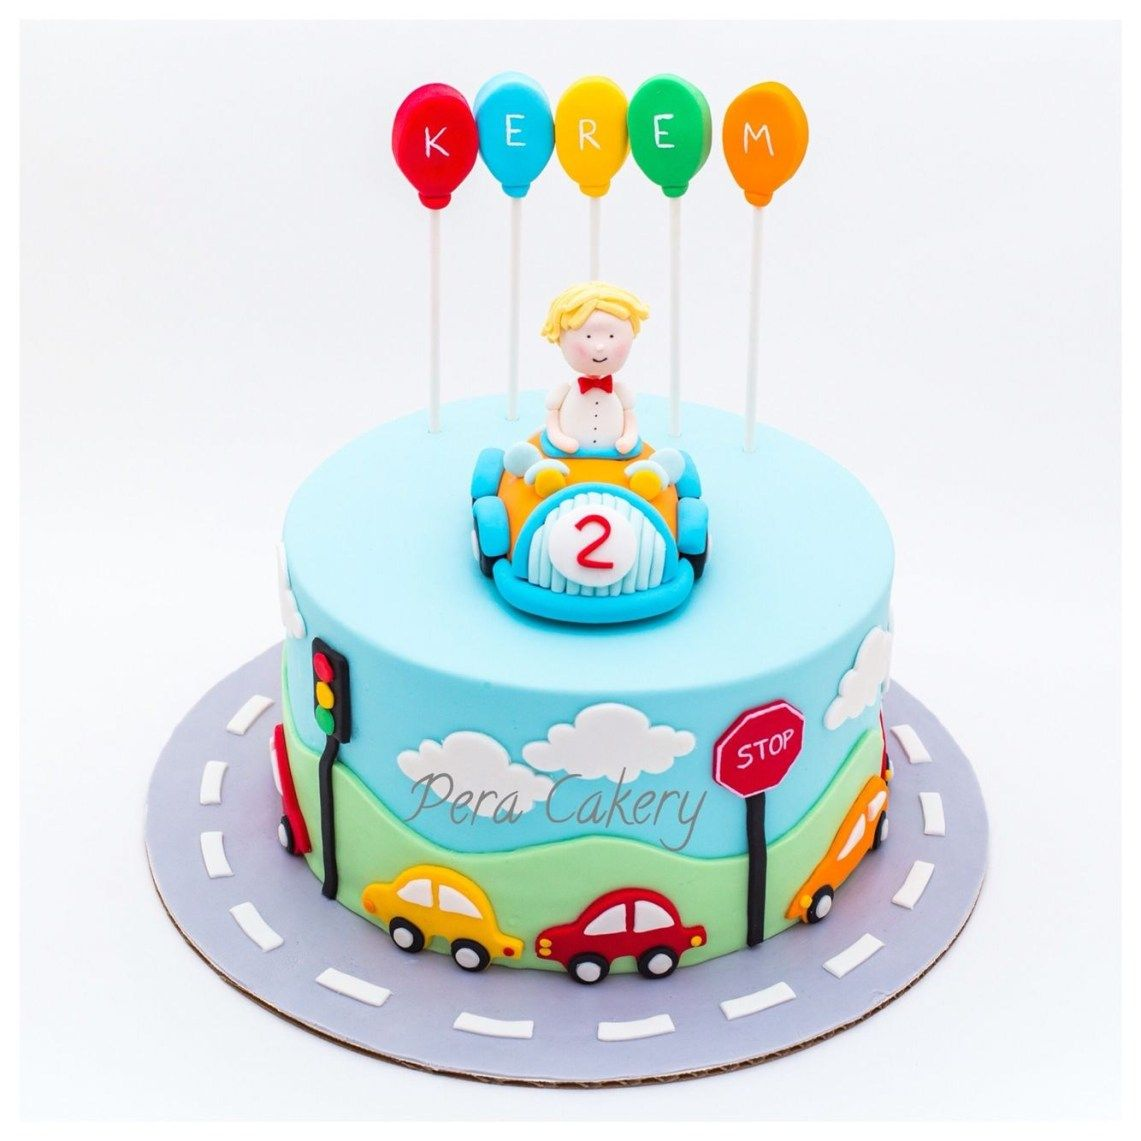 25 Elegant Picture Of 2 Year Old Birthday Cake With Images